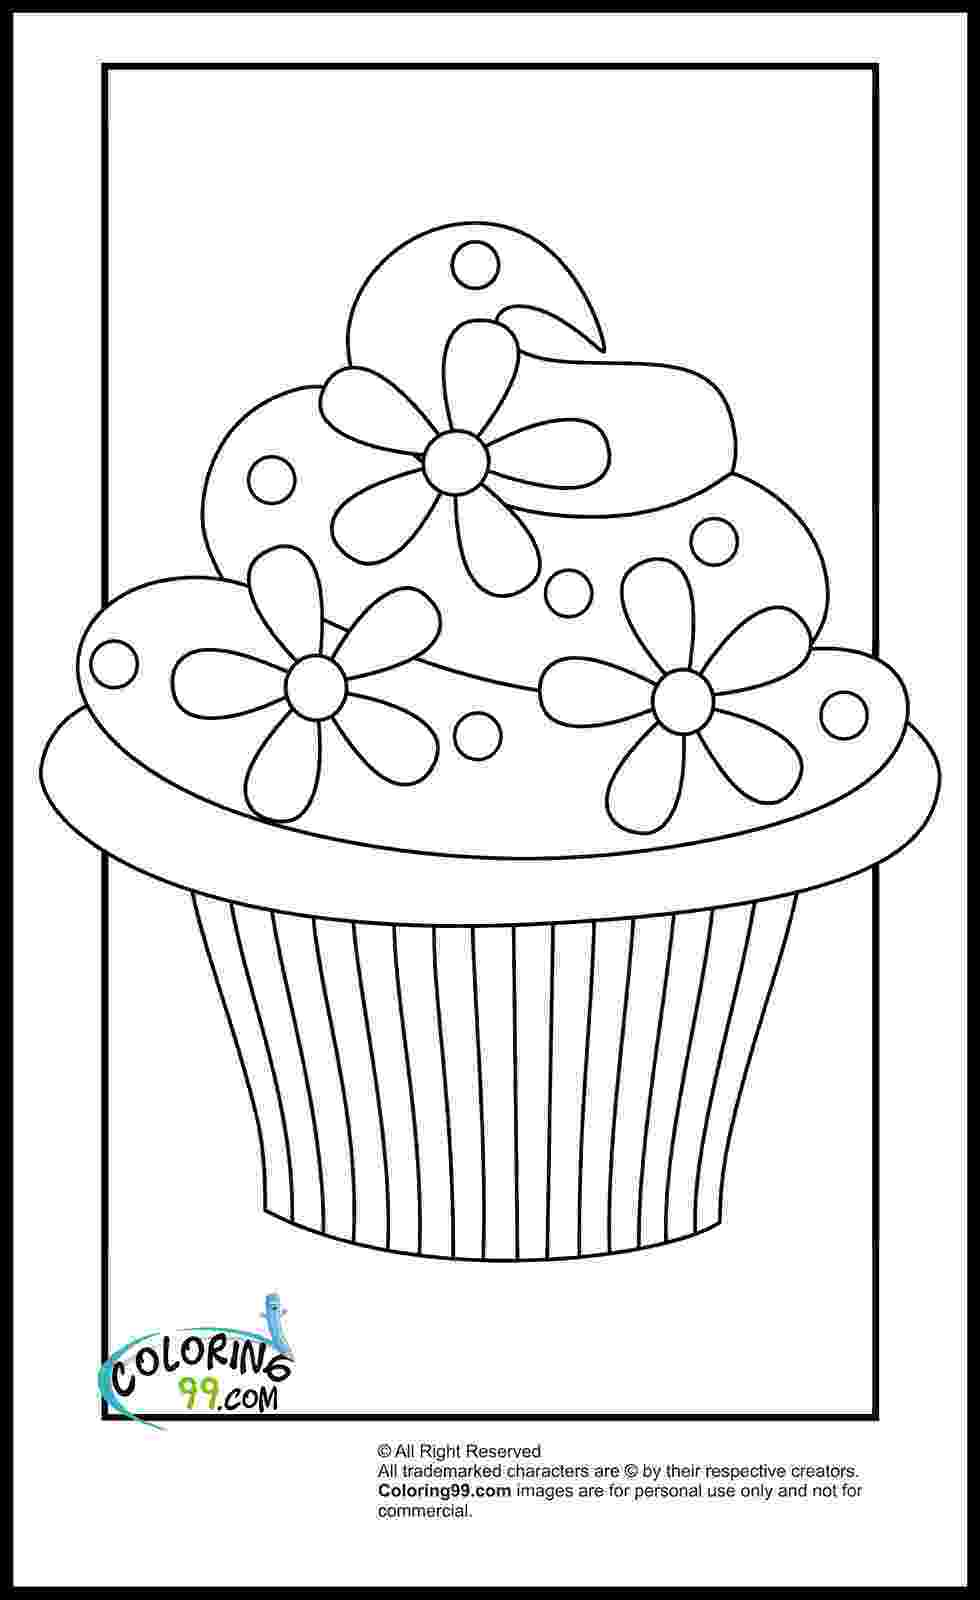 printable pages to color zebra coloring pages free printable kids coloring pages color to pages printable